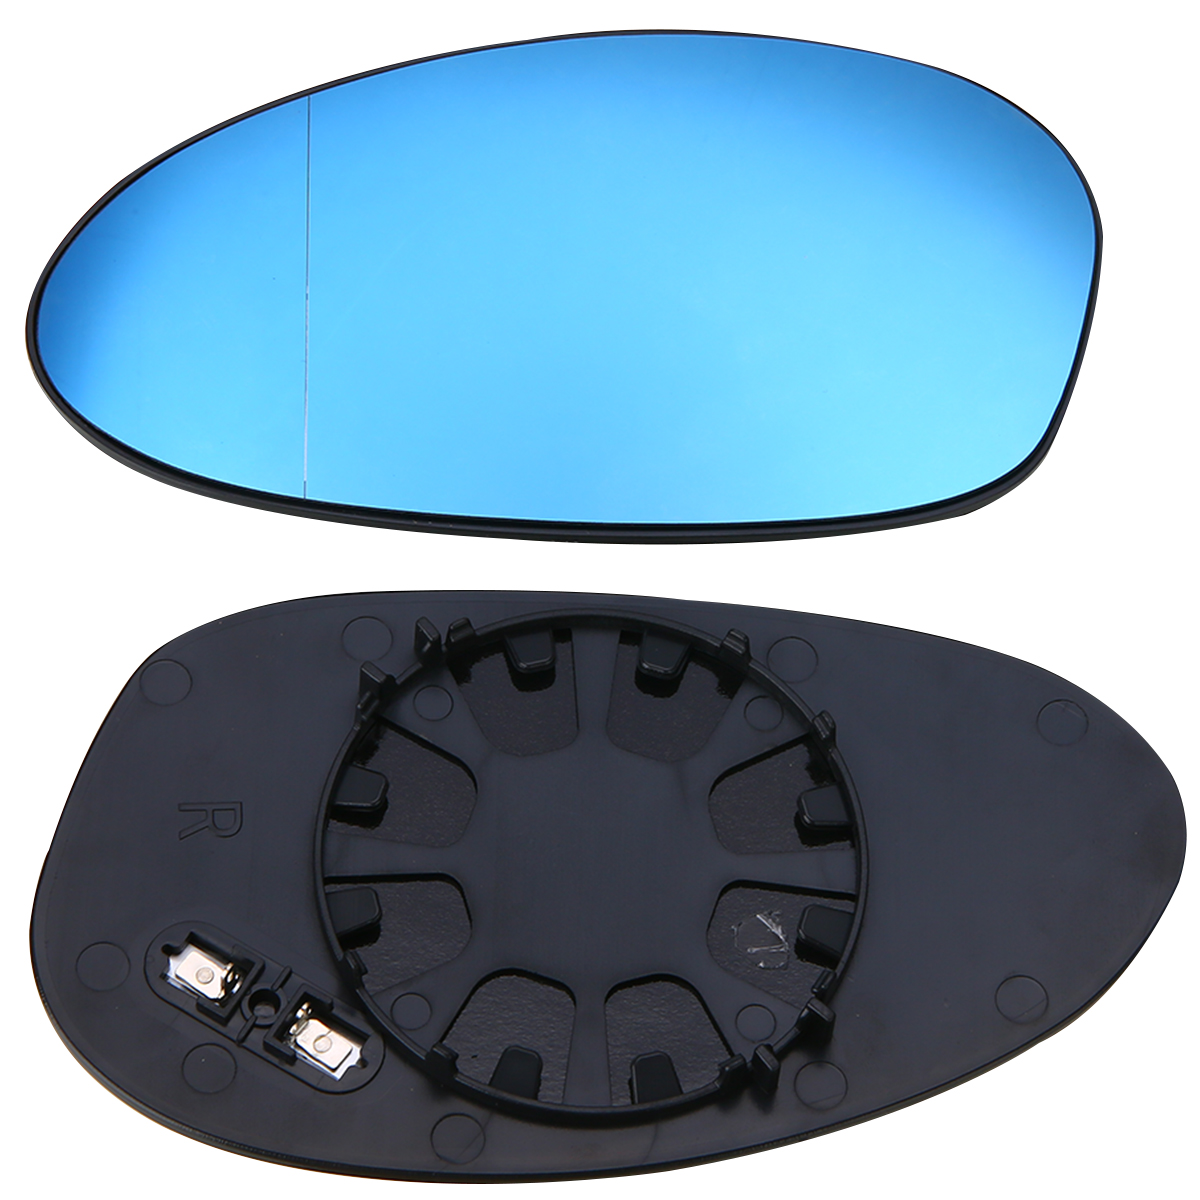 1Pair Door Mirror Glass Heated Blue Glass Wide Angle Aspherical Universal For BMW 3 Series E82 E90 E91 E92 E46 in Side Mirror Folding Kit from Automobiles Motorcycles